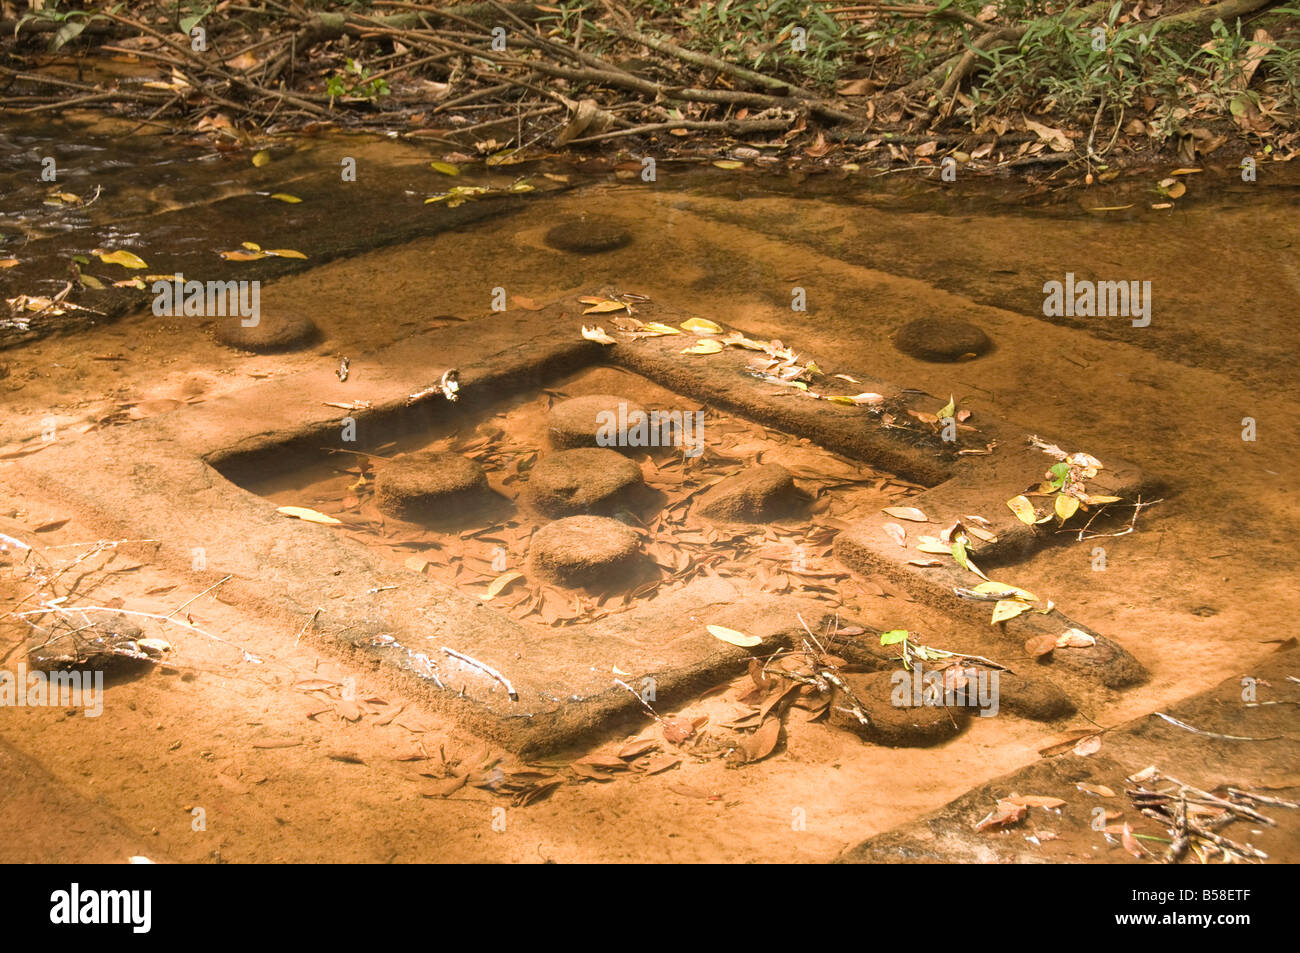 River of a thousand lingas, Kbal Spean, near Angkor, Siem Reap, Cambodia, Indochina, Southeast Asia - Stock Image